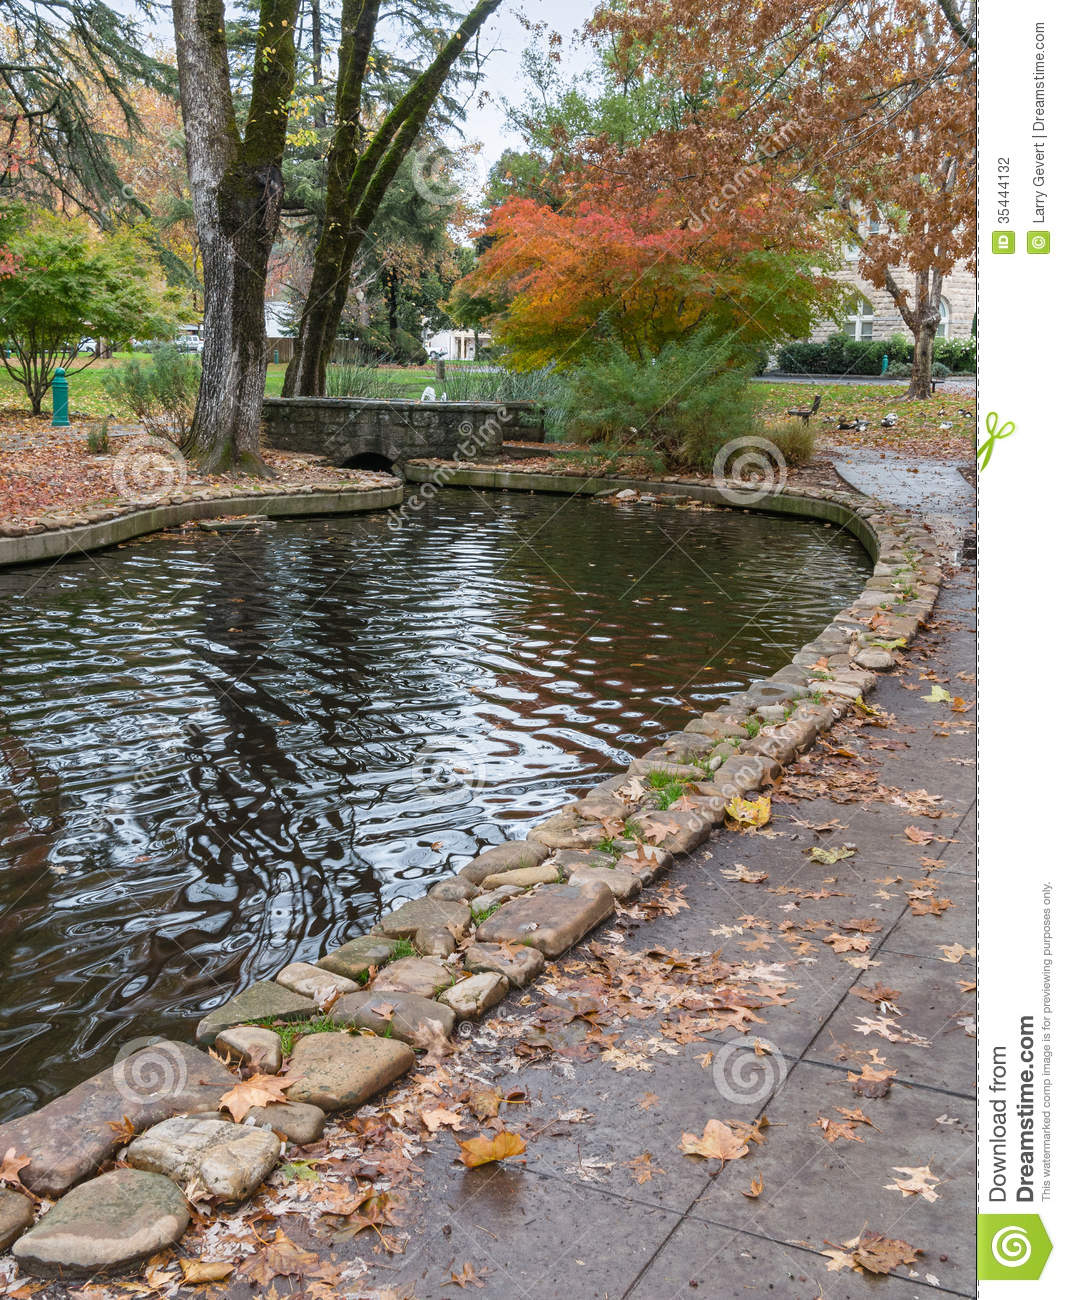 Colorful pond sonoma california stock photography for Colorful pond fish